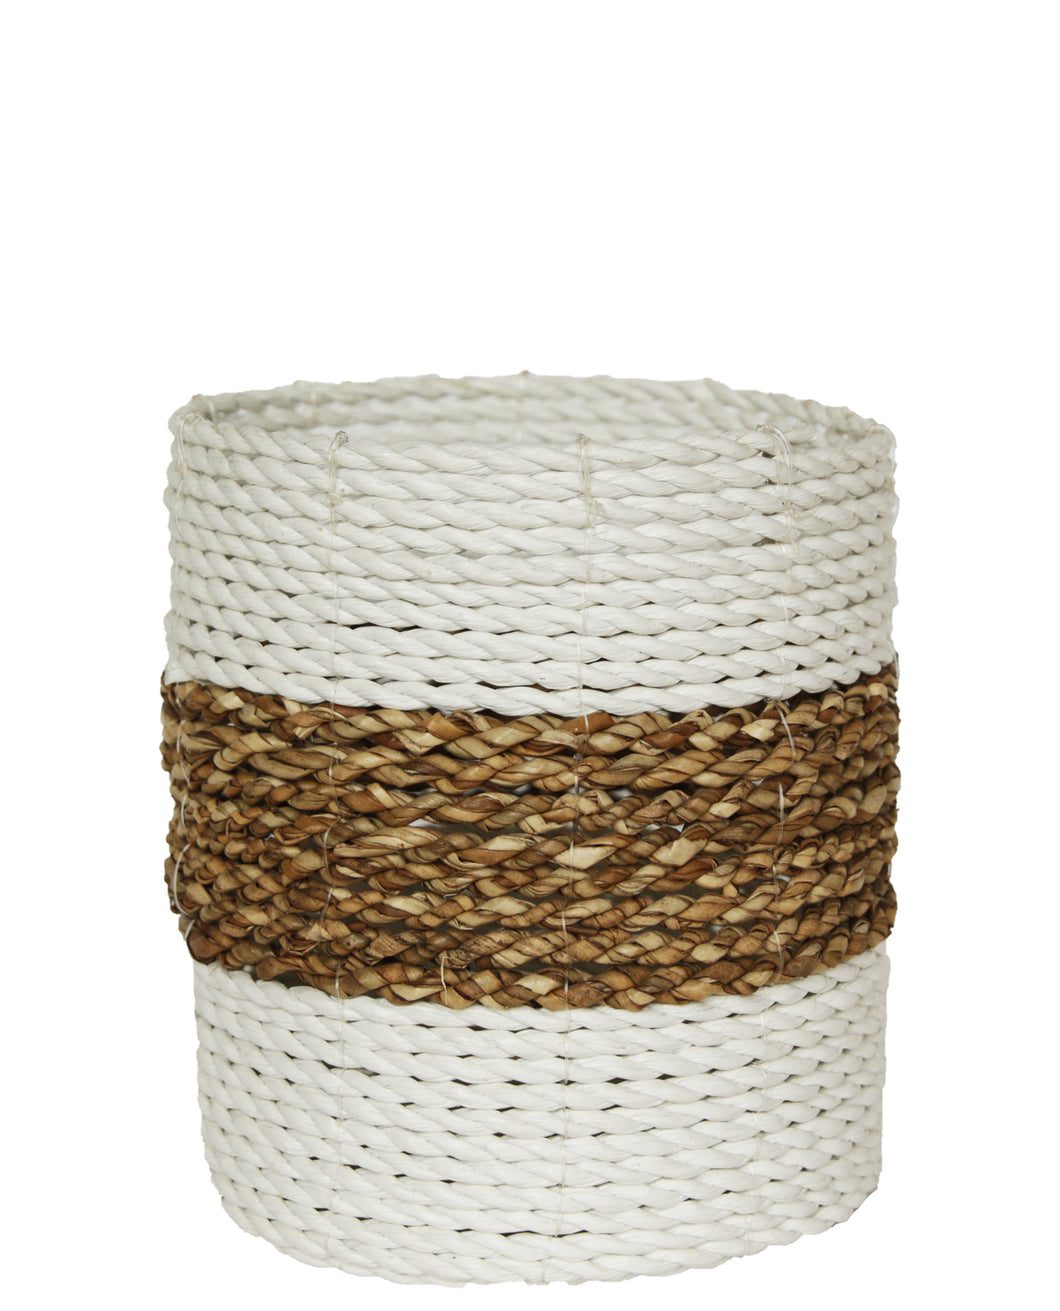 WOVEN RATTAN NATURAL AND WHITE BASKET SMALL